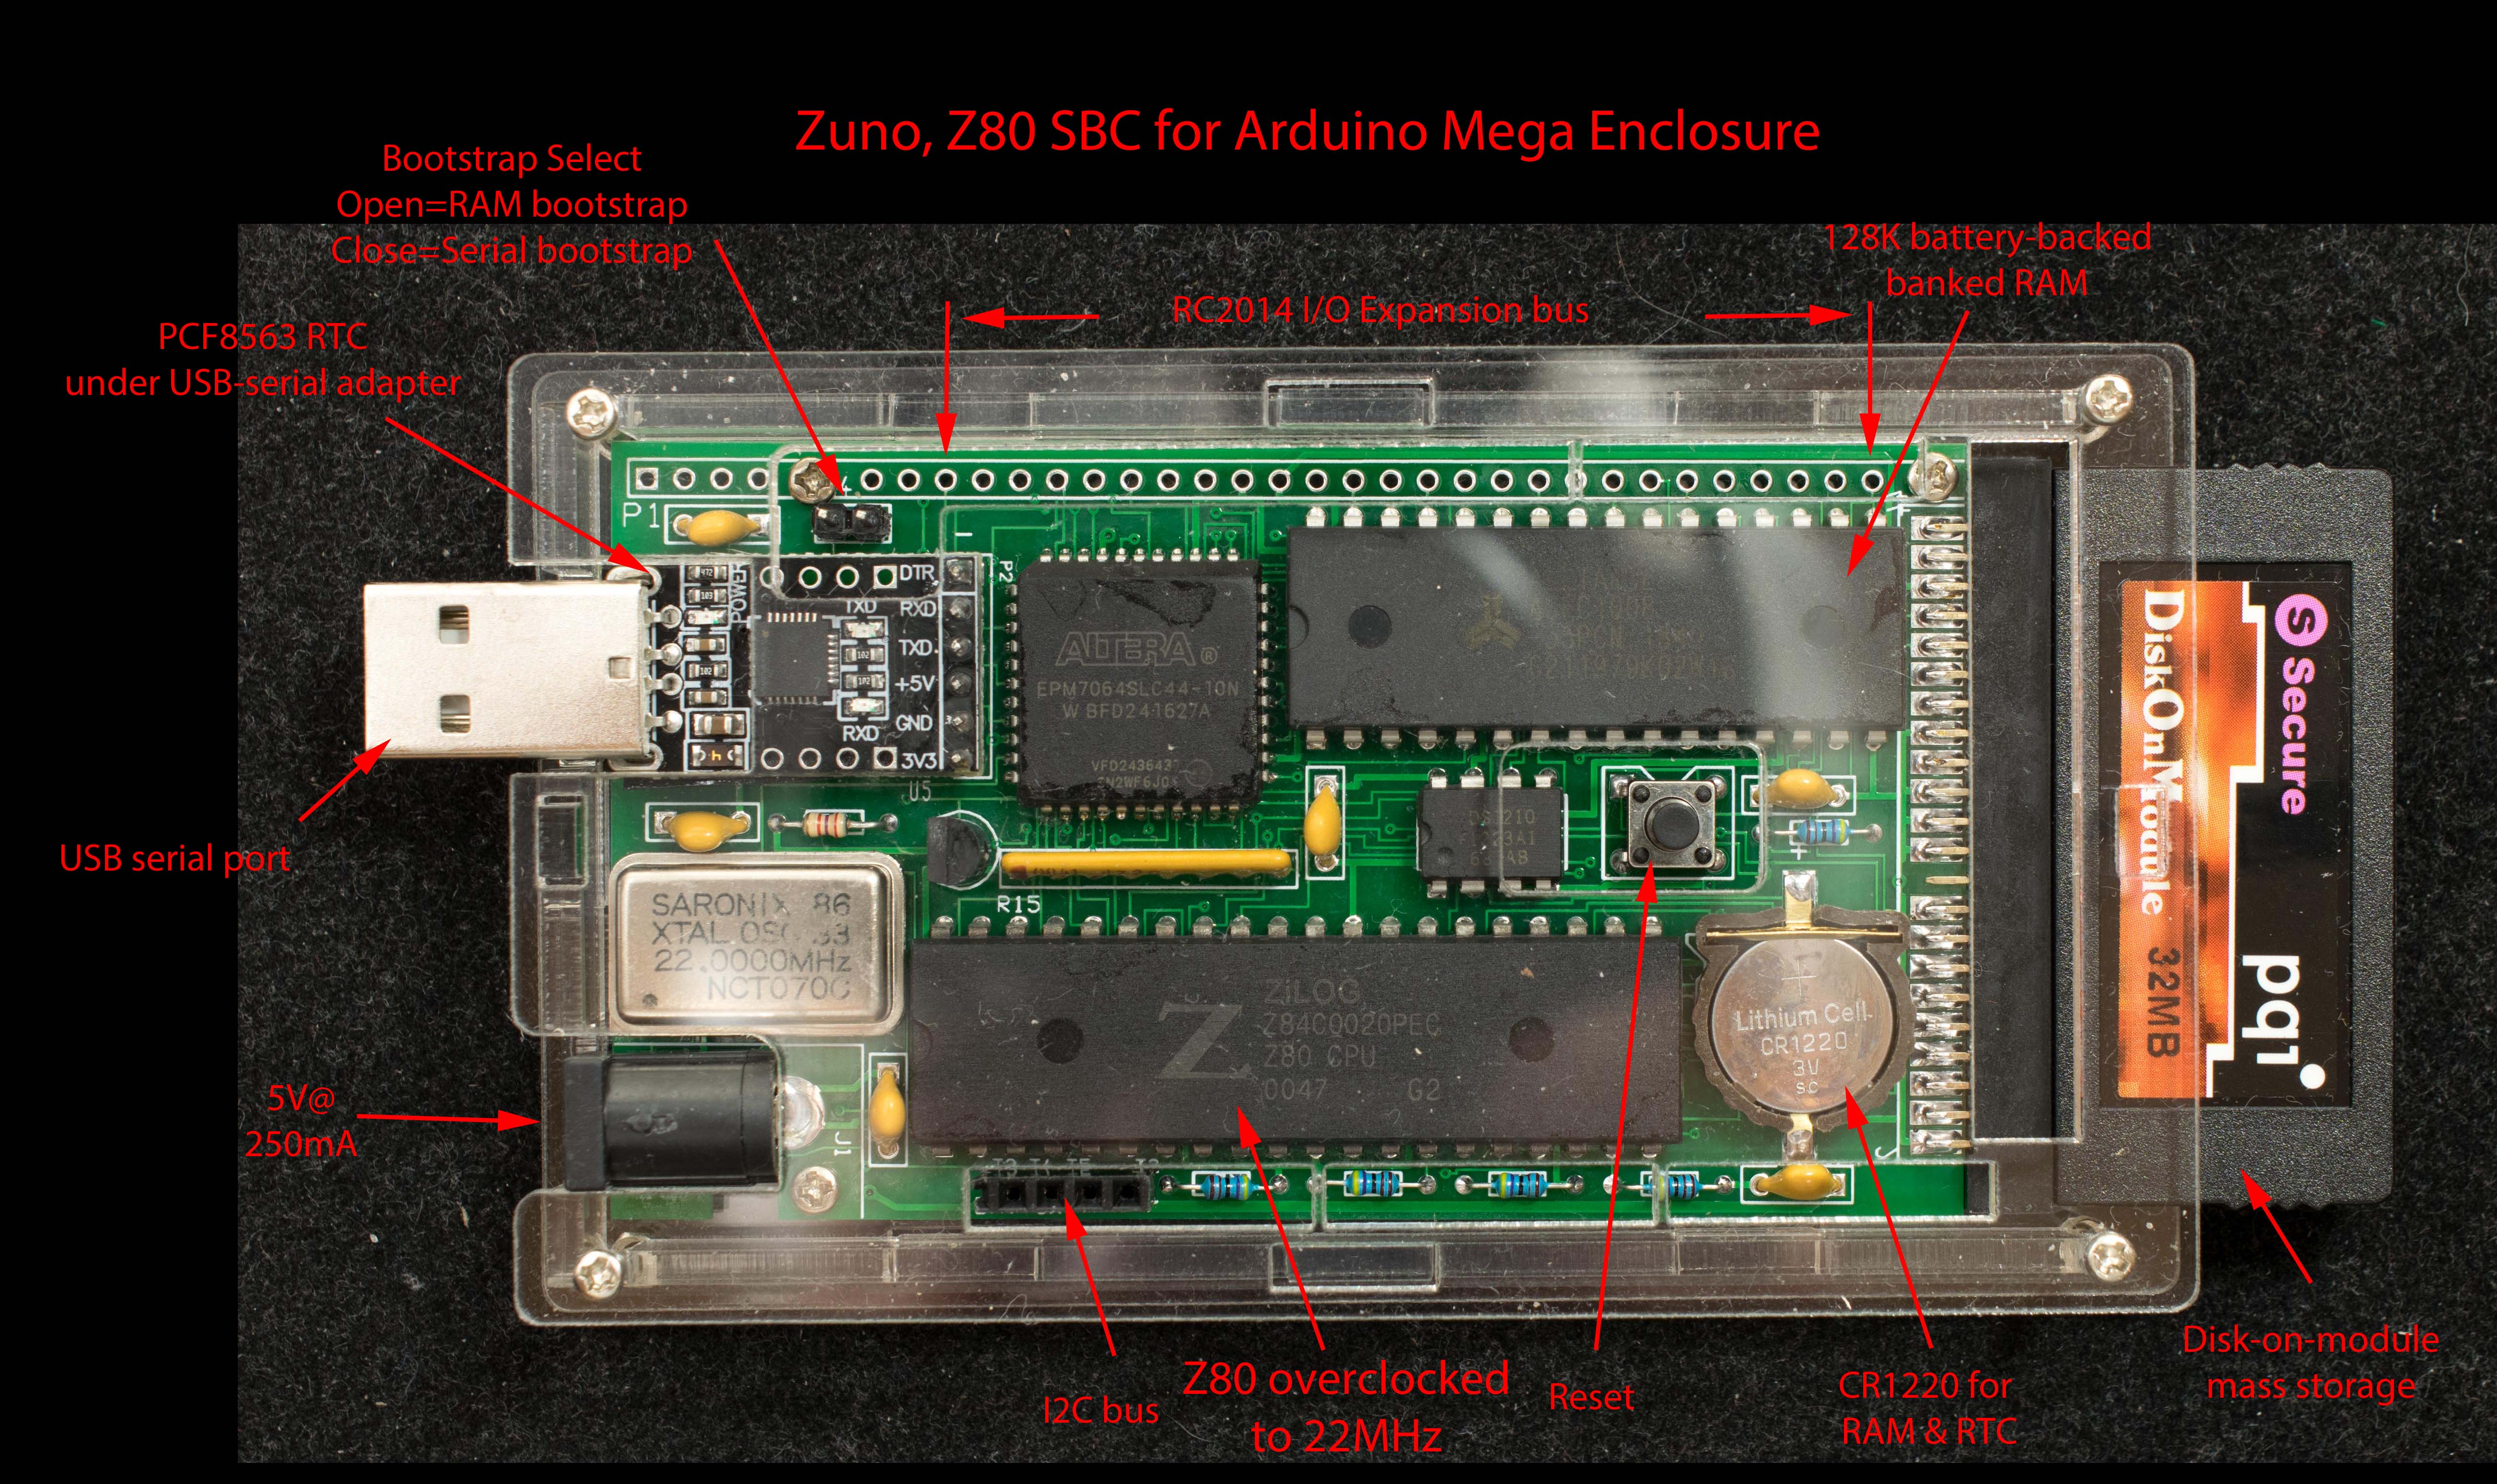 www.retrobrewcomputers.org_lib_plugins_ckgedit_fckeditor_userfiles_image_builderpages_plasmo_zuno_zuno_r03_annotated_copy.jpg